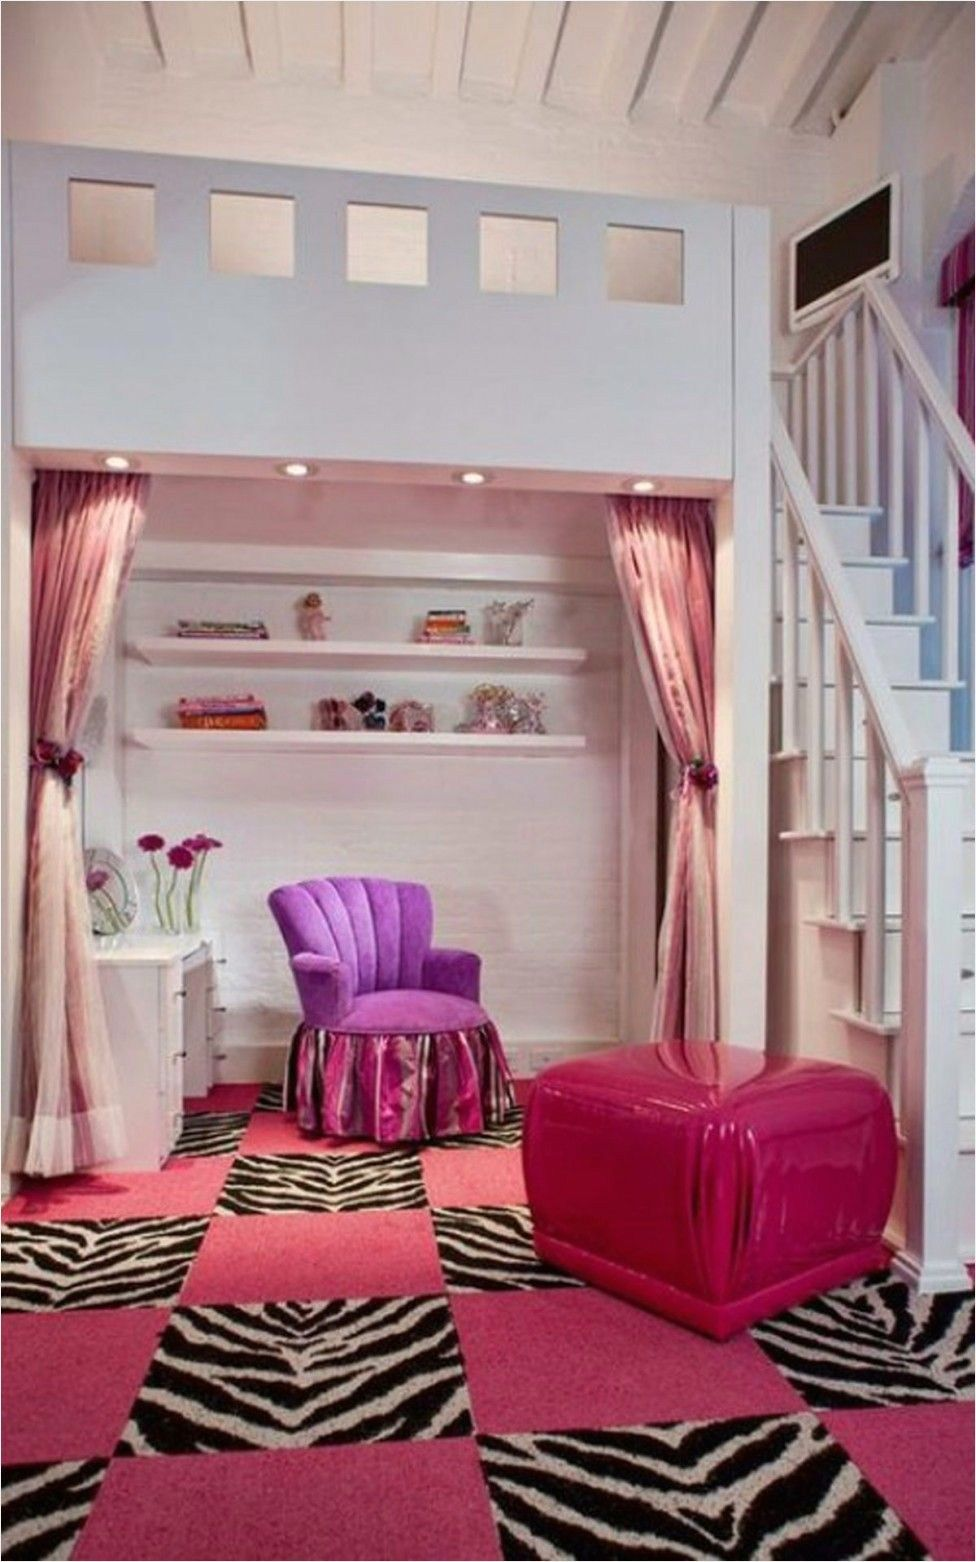 nice Pretty Girls Bedroom Part - 15: 40 Perfect Girls Bedroom Ideas for Small Rooms 78 Small Room Ideas for Girls  with Cute Color Bedroom 22 Pretty Girls Room Design Room Layouts for 6